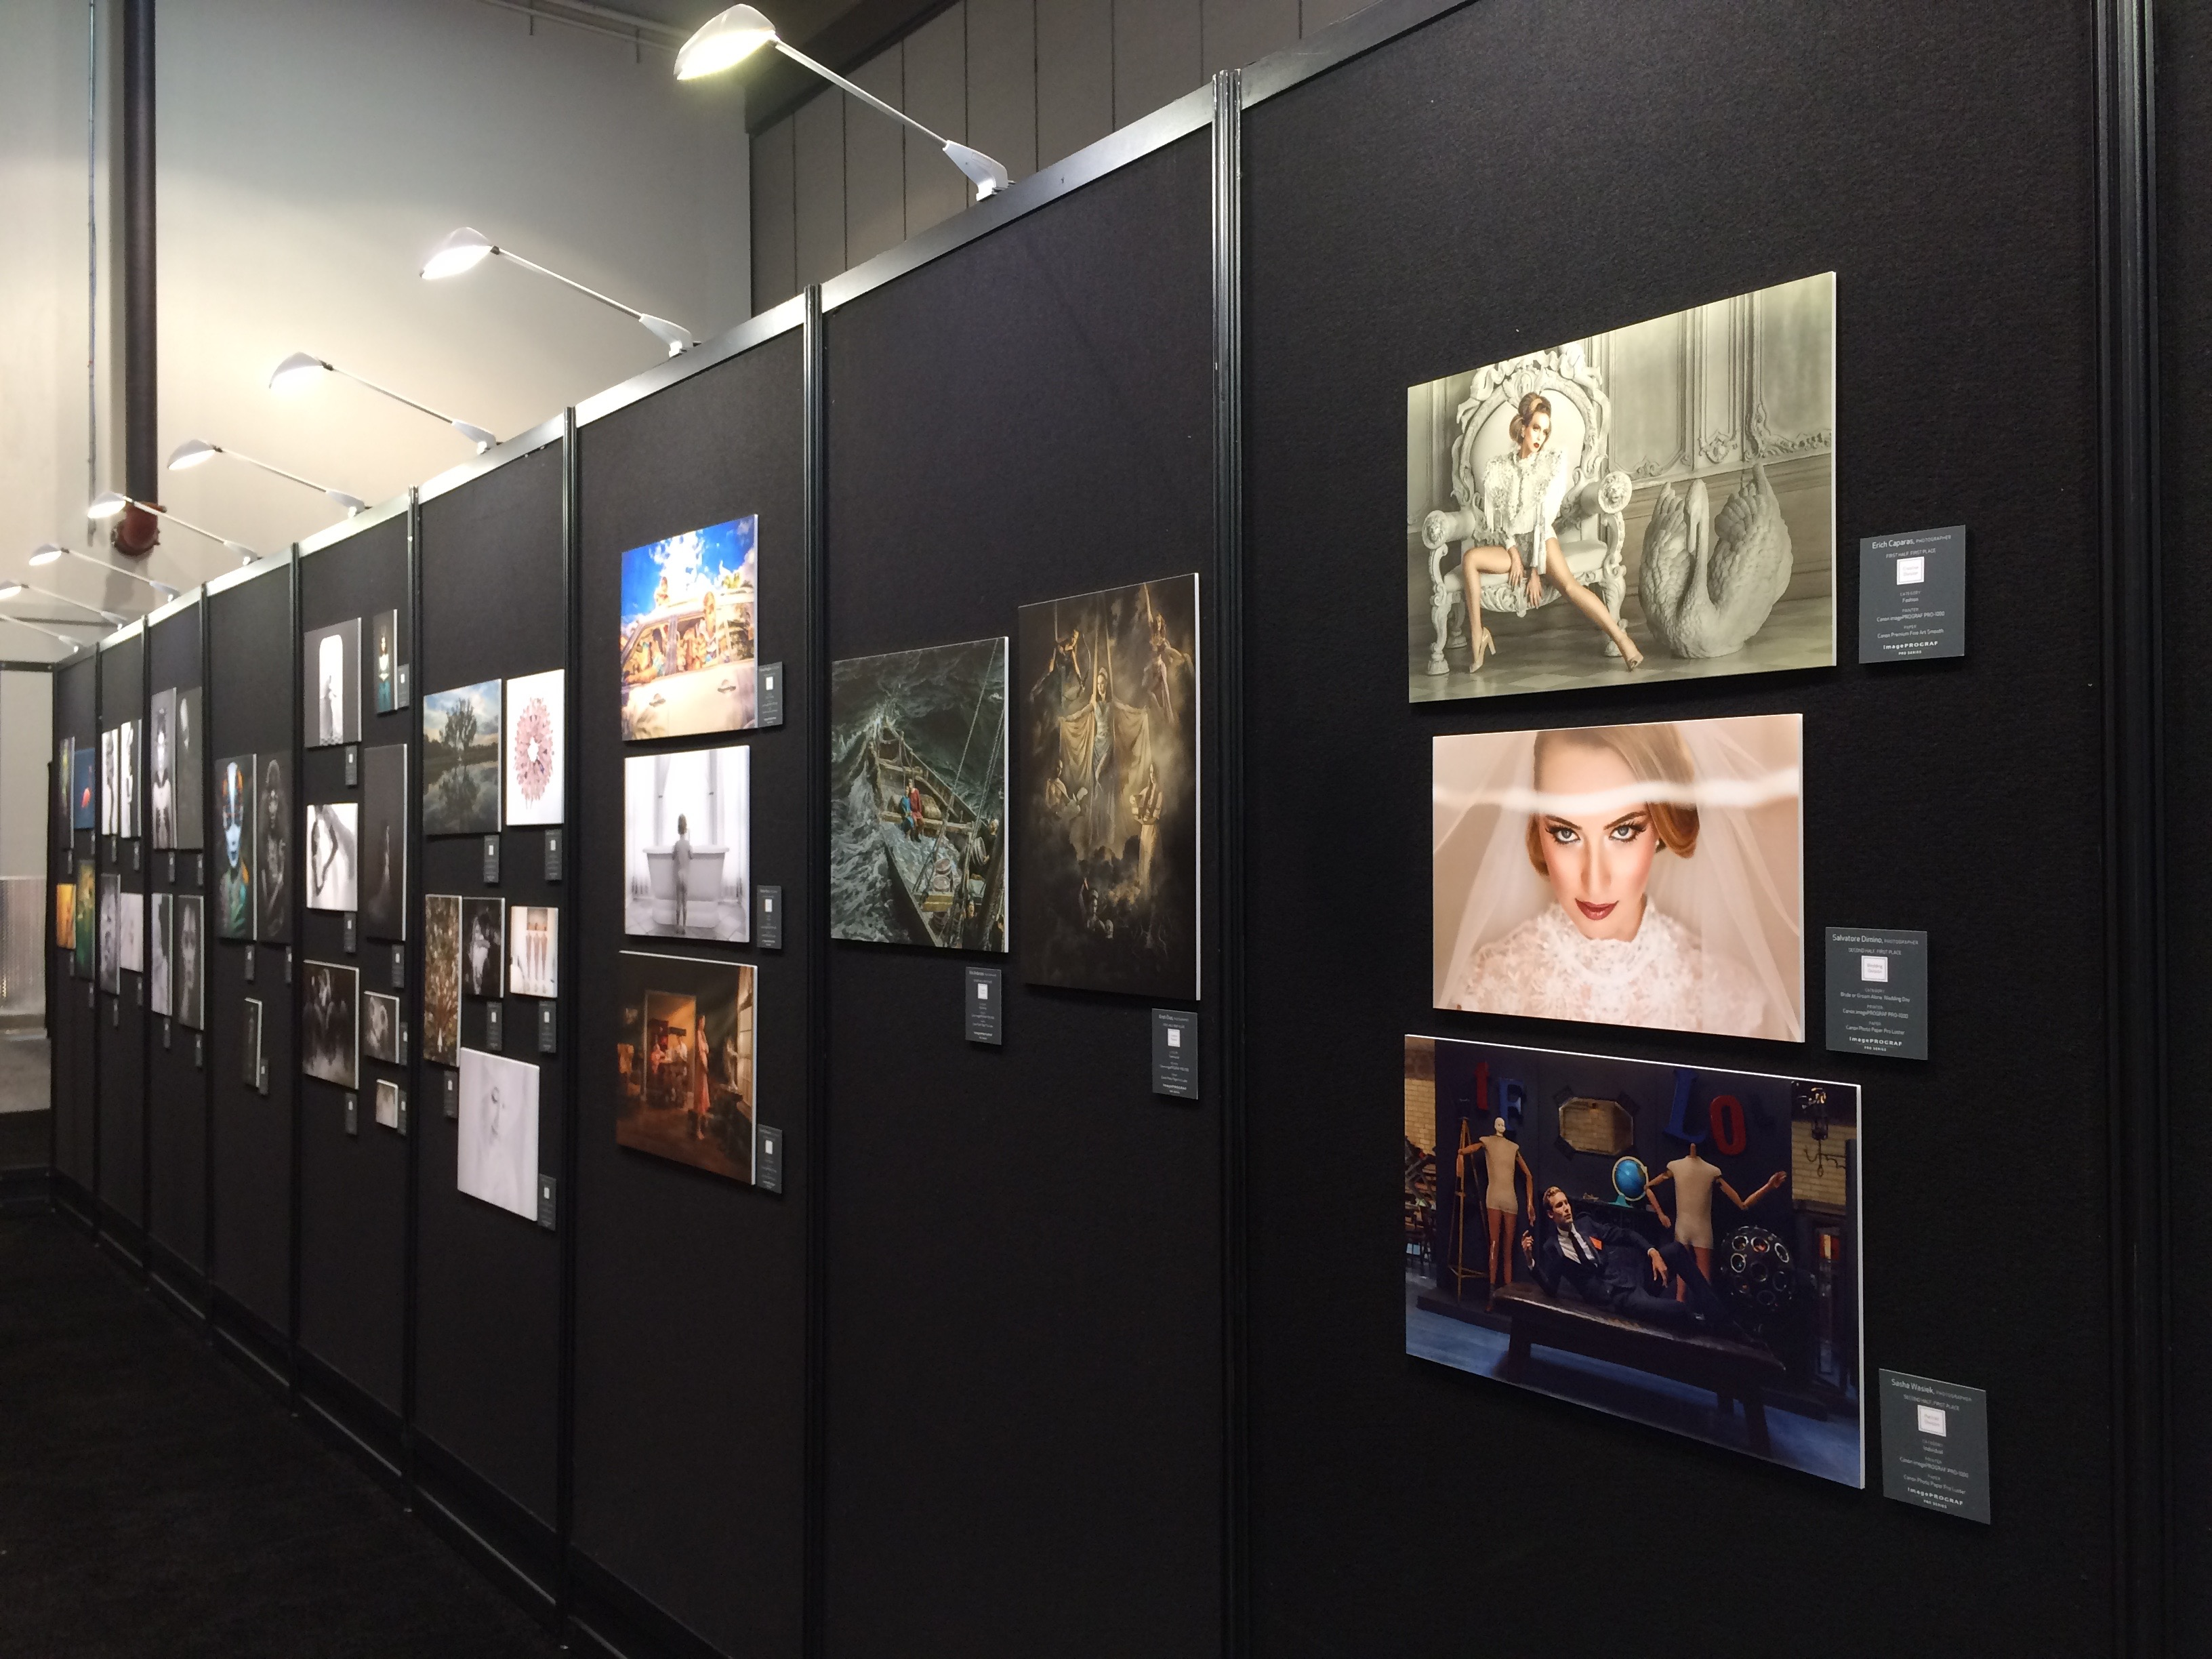 The Wedding and Portrait Photography Expo showed off stylish prints